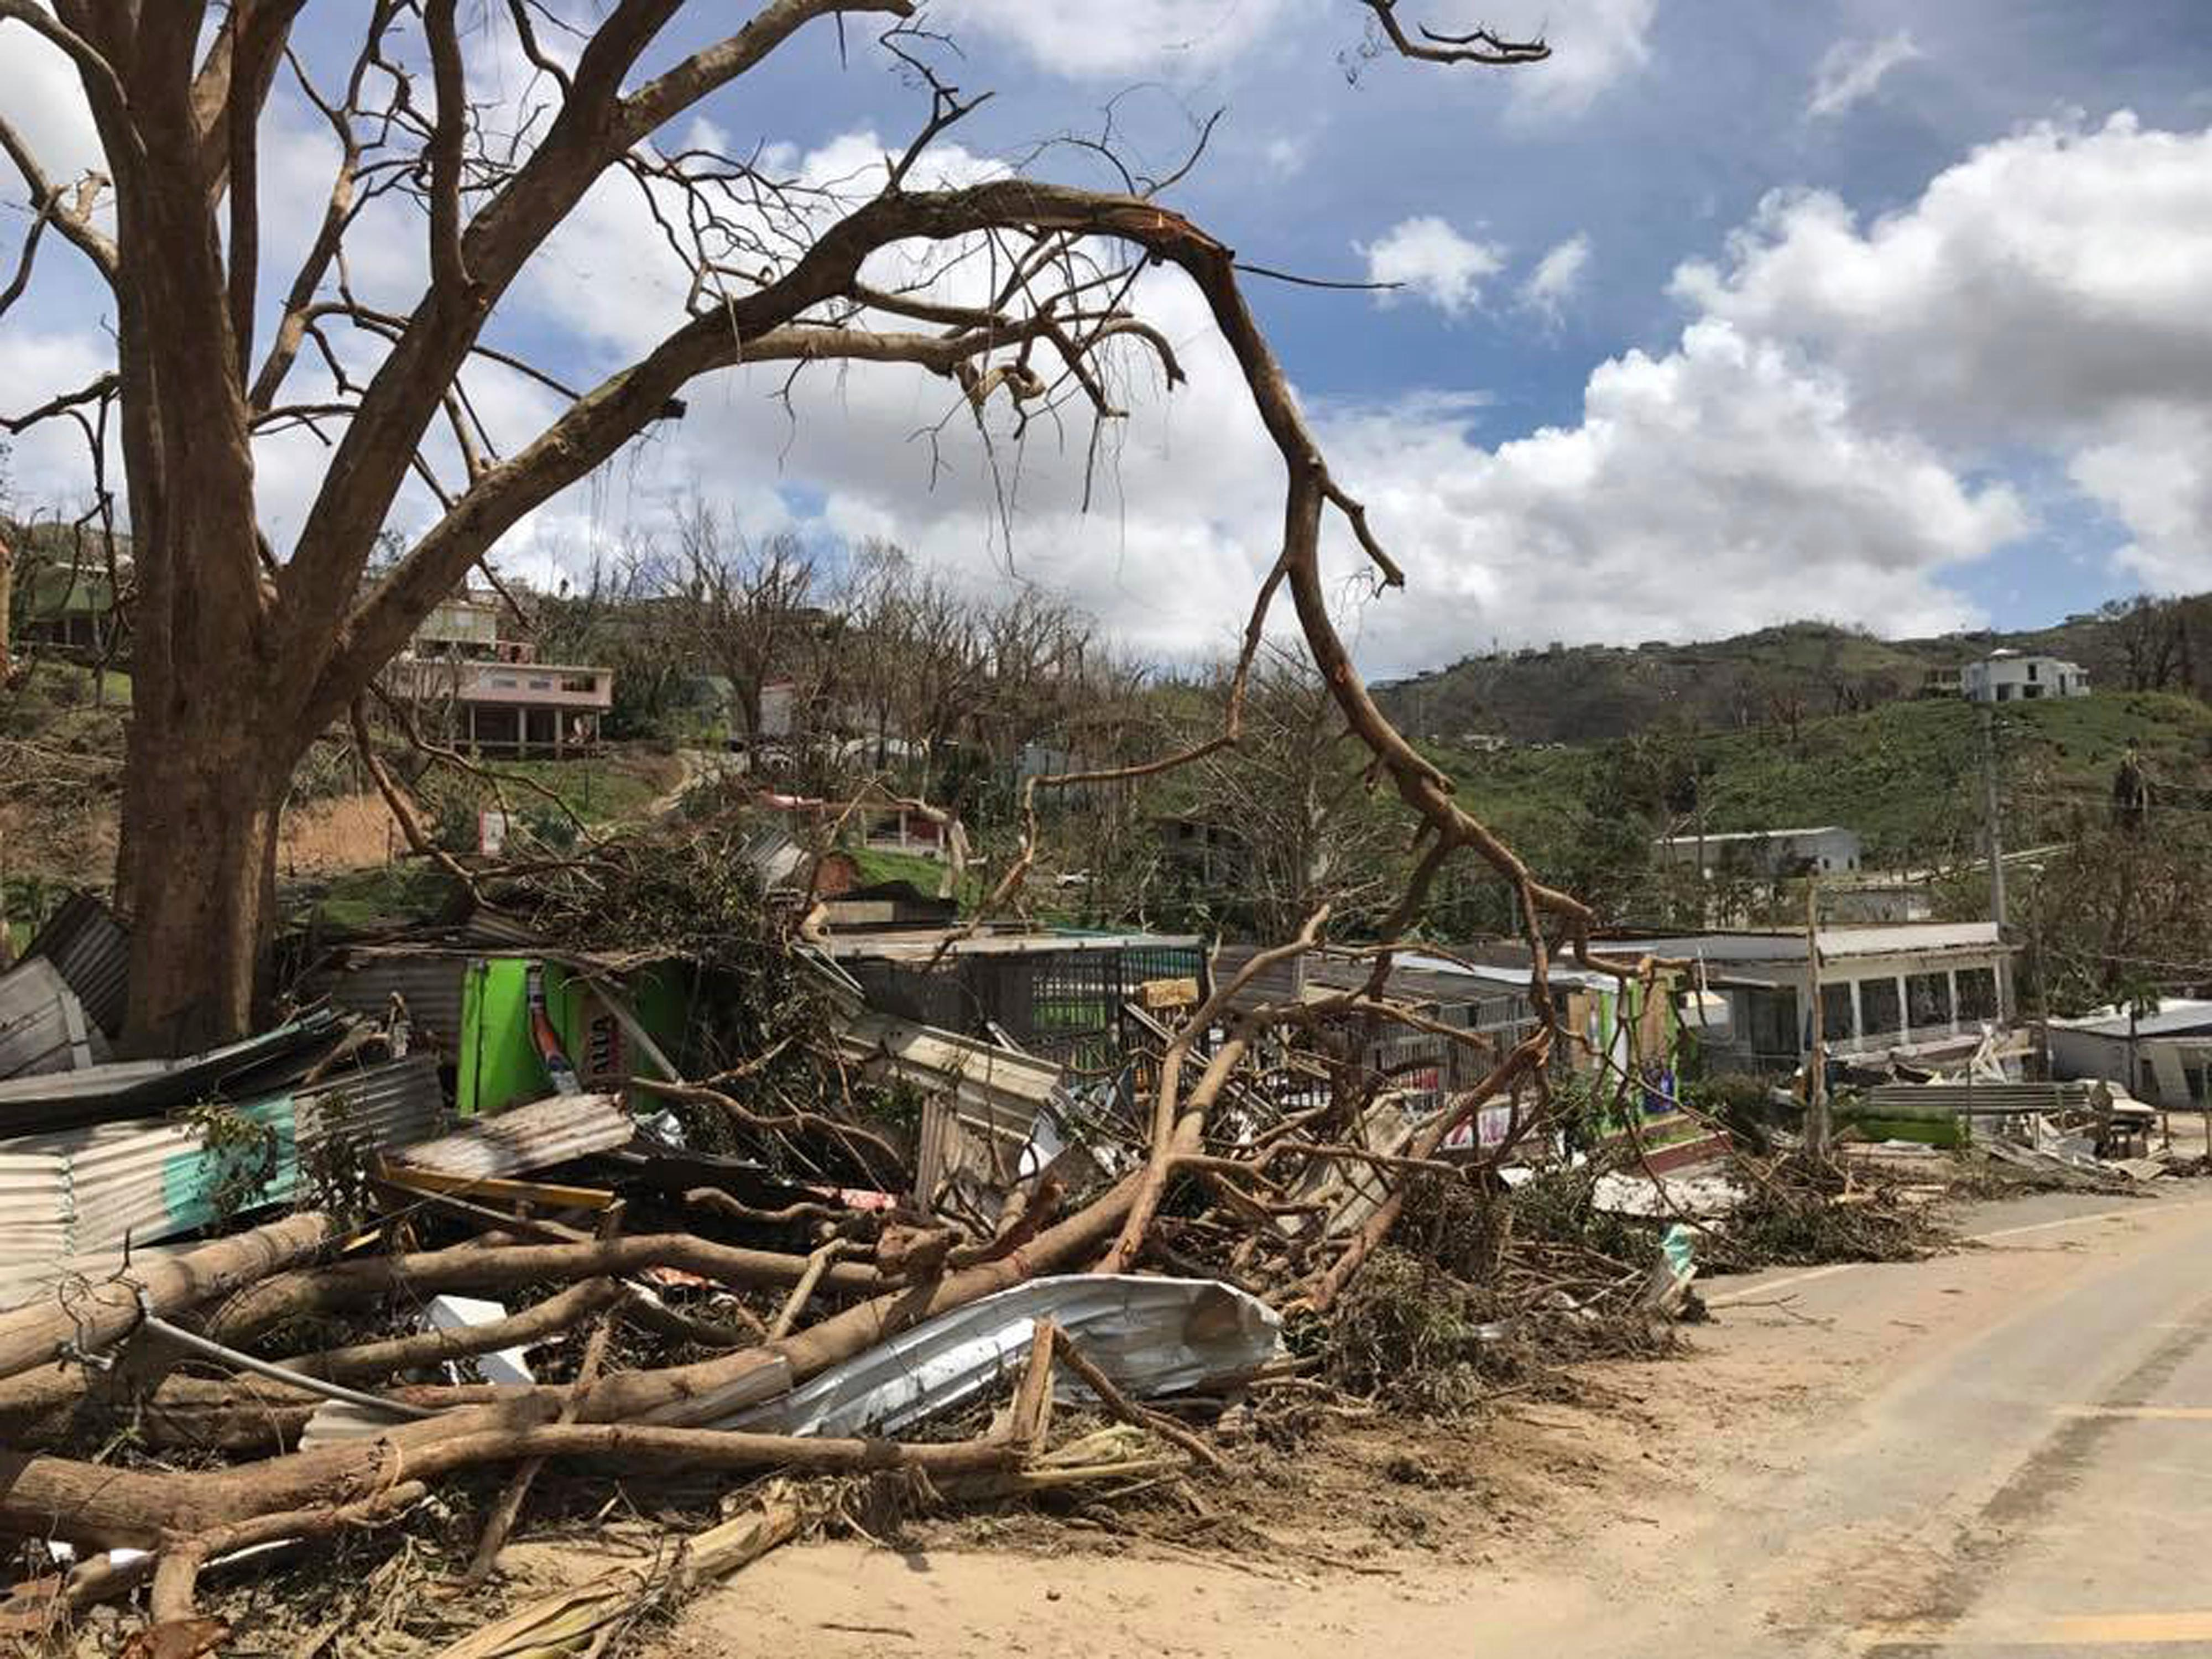 This undated photo provided by Hector Alejandro Santiago shows his farm in Barranquitas, Puerto Rico, destroyed by September 2017's Hurricane Maria. For 21 years Santiago raised poinsettias, orchids and other ornamental plants which were sold to major retailers including Costco, Walmart and Home Depot. In a matter of hours Maria wiped it away. (Héctor Alejandro Santiago via AP)